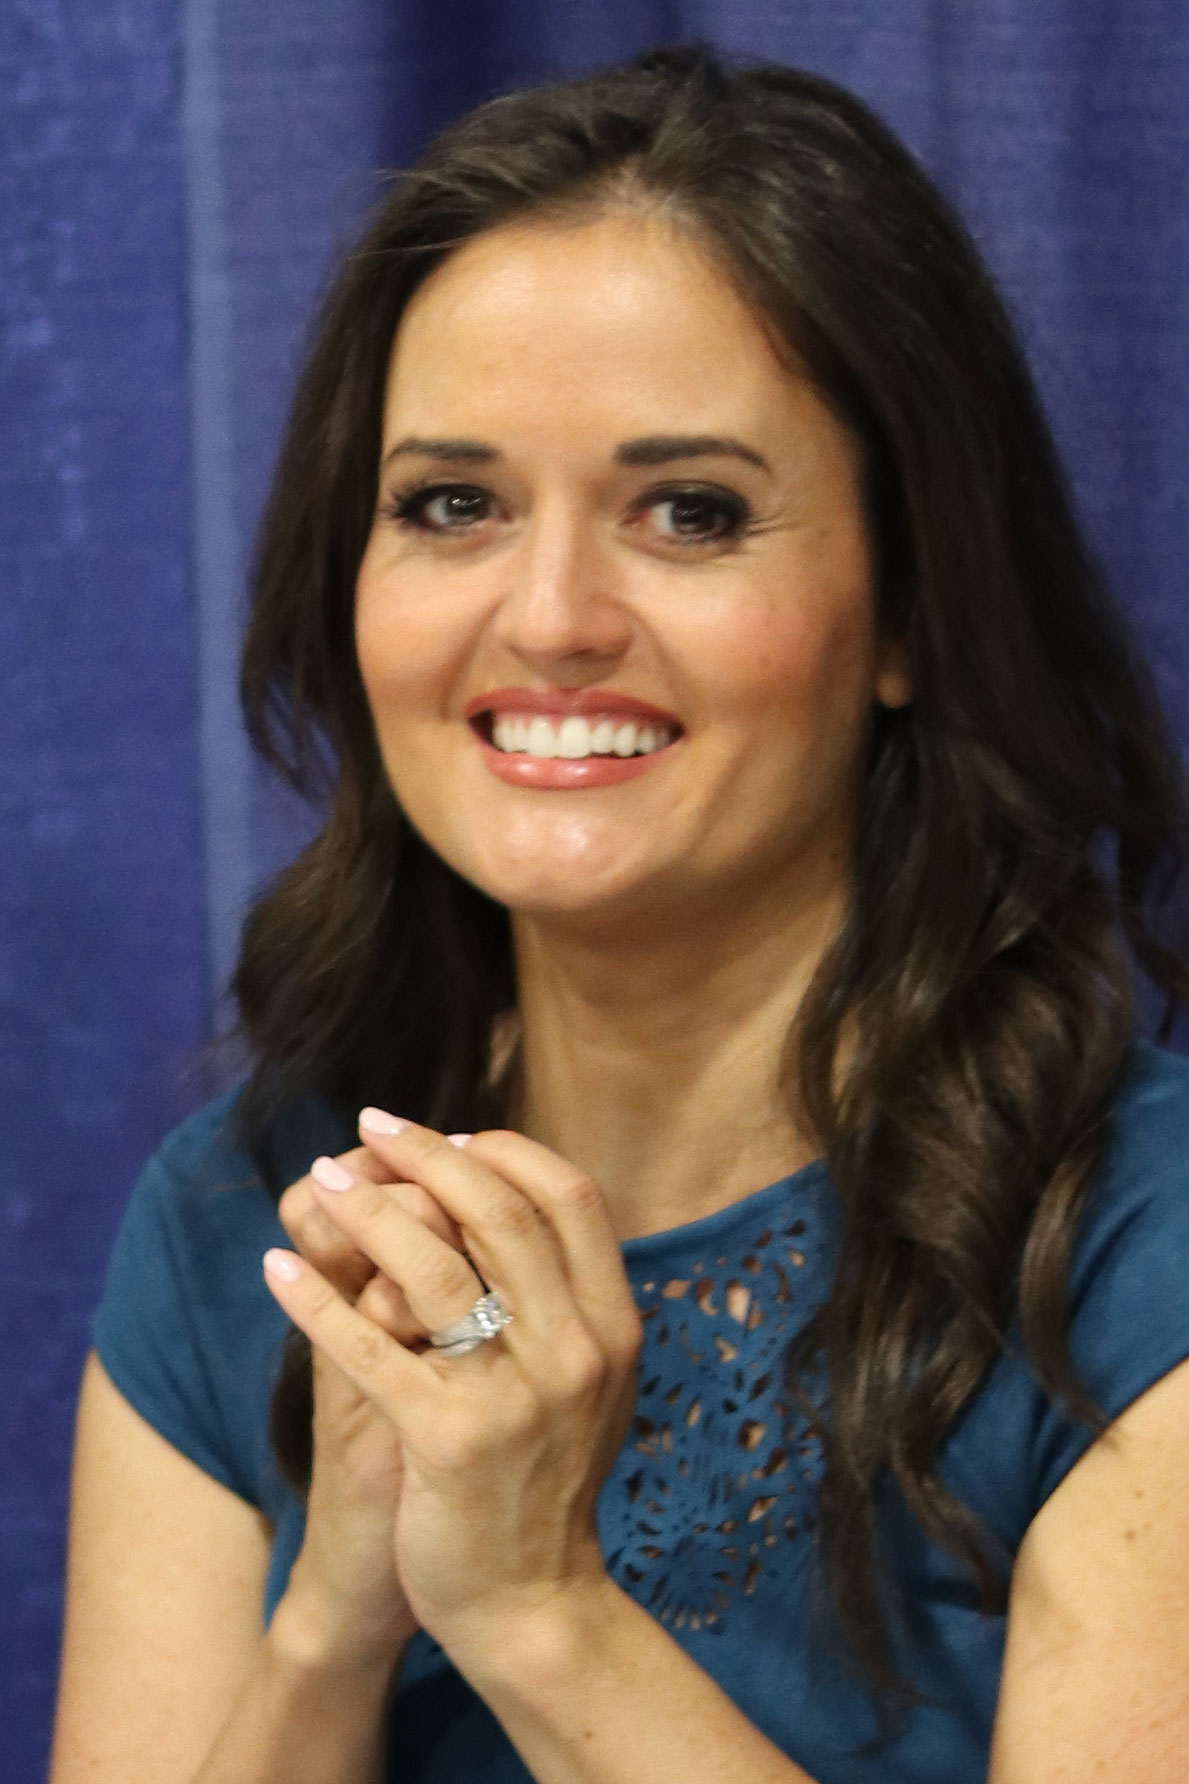 Photos Danica McKellar nude photos 2019